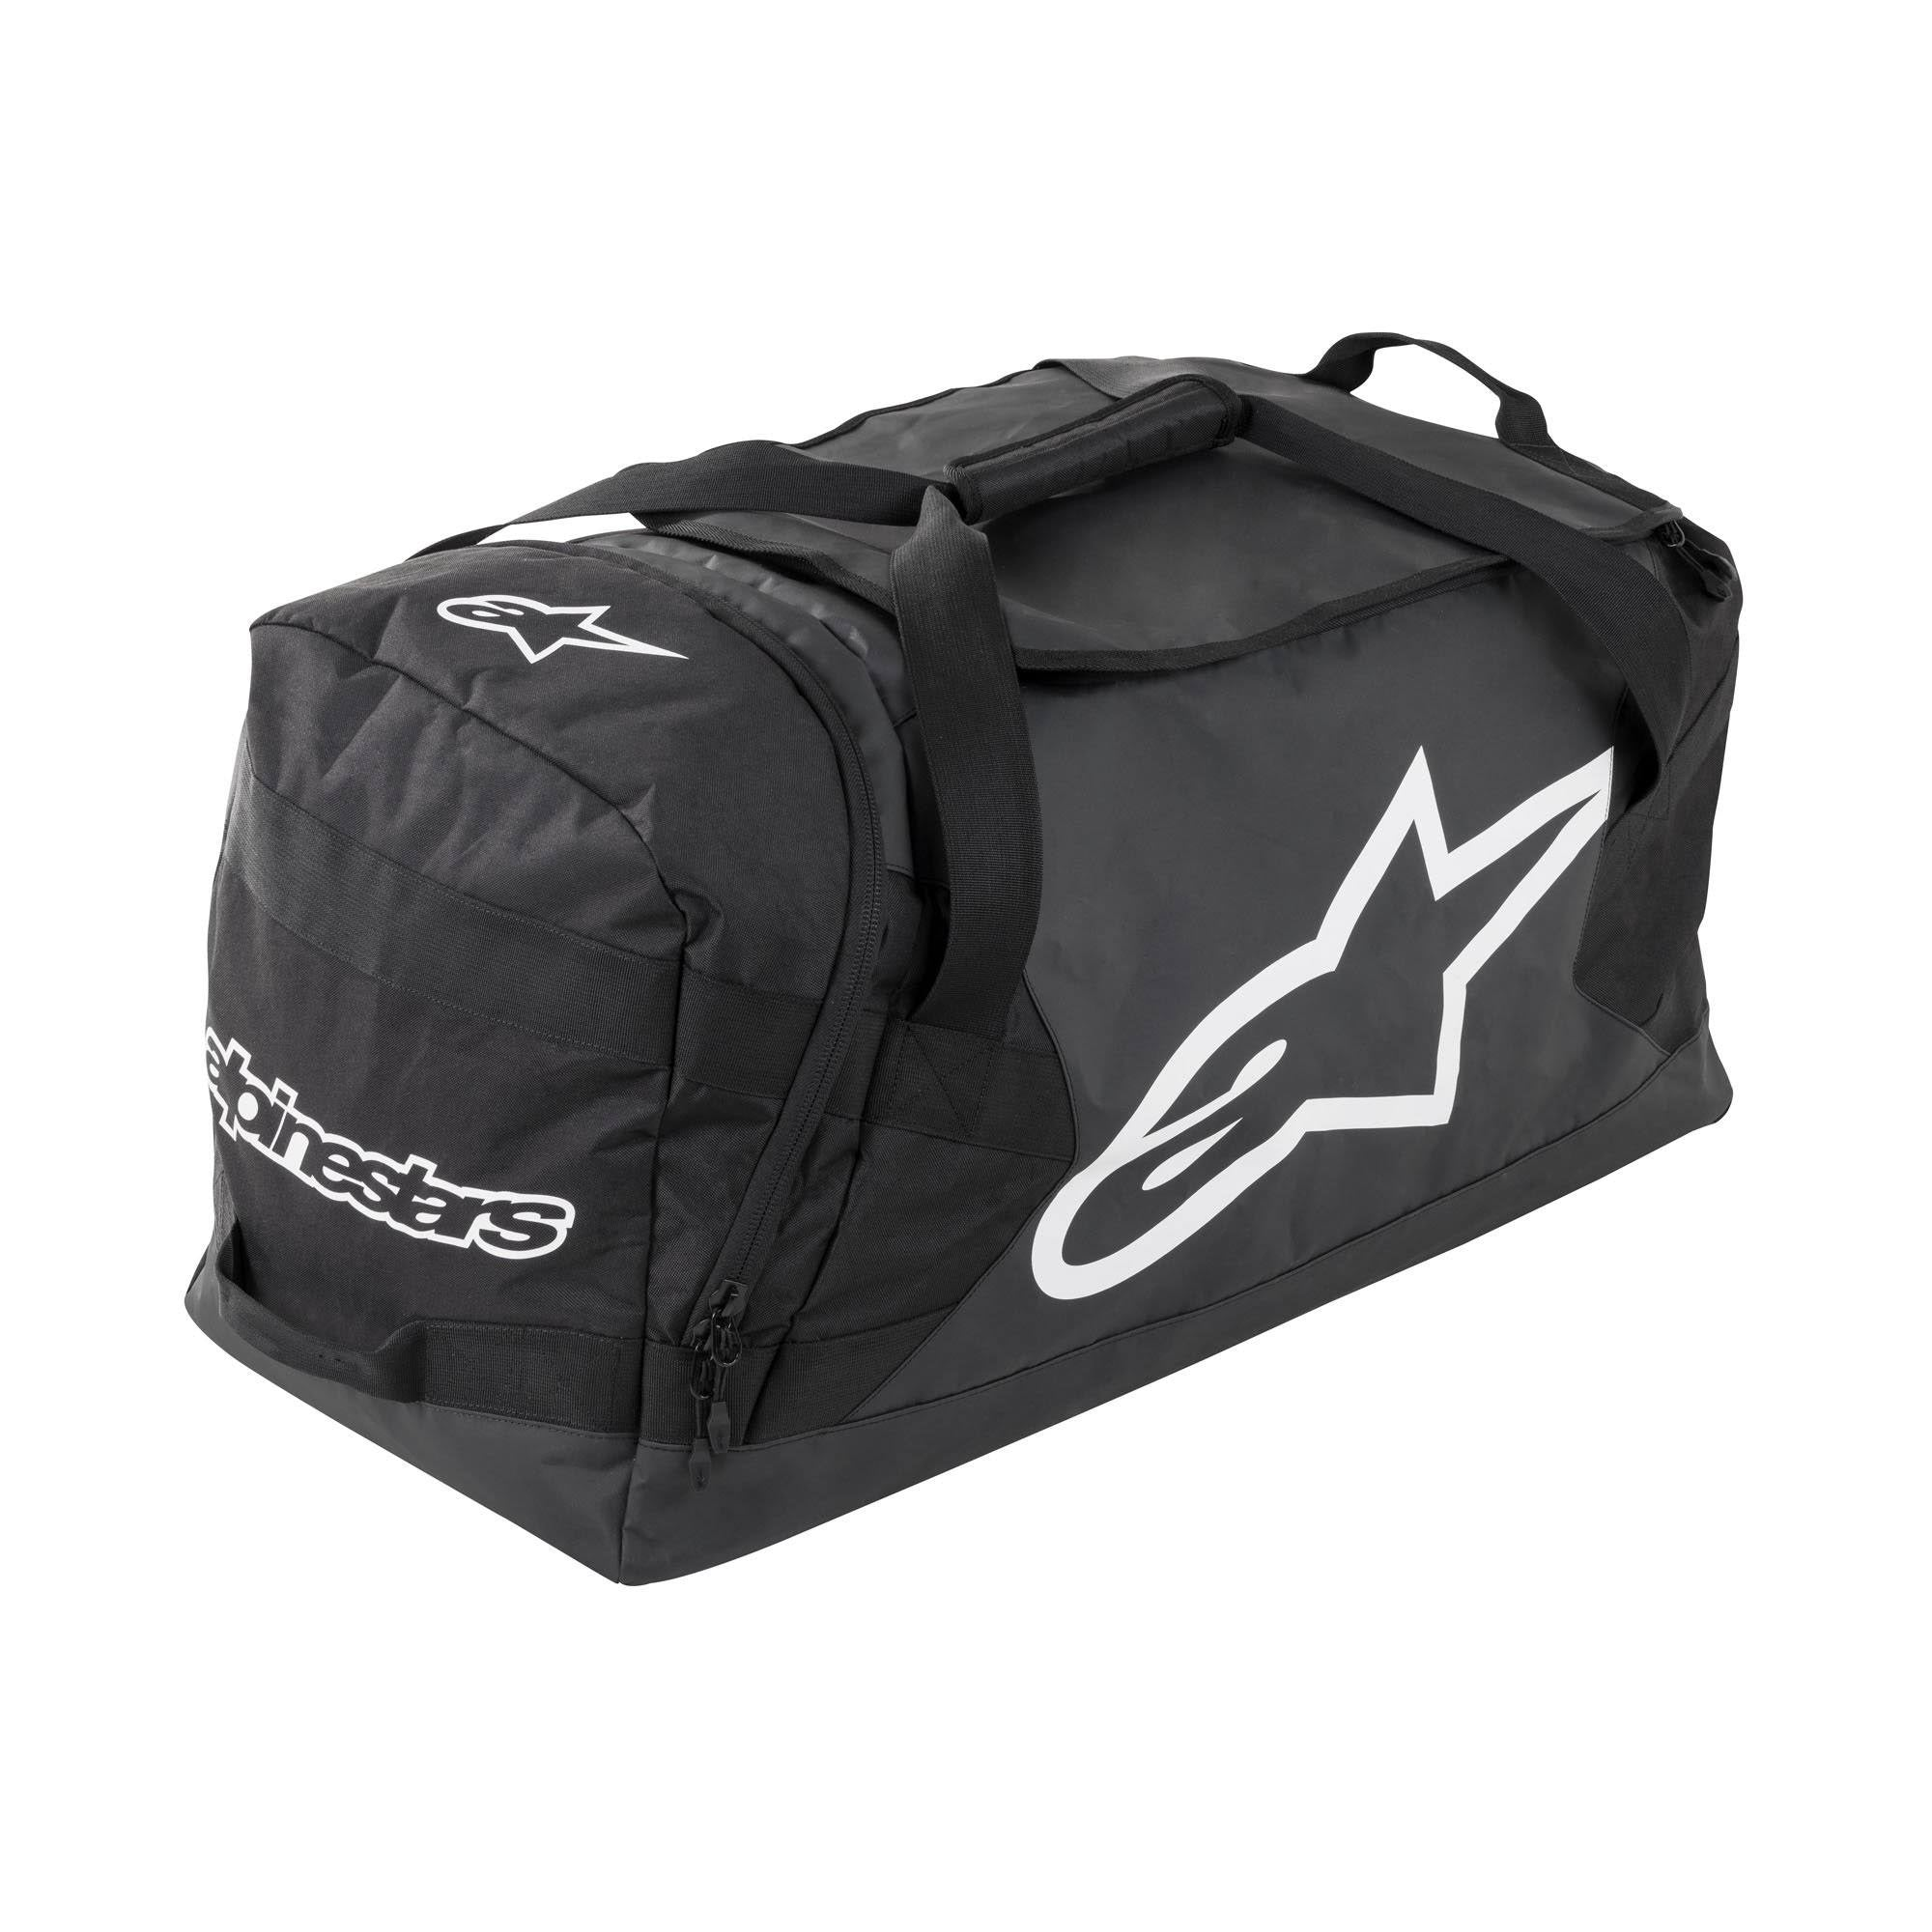 Alpinestars Goanna Bag